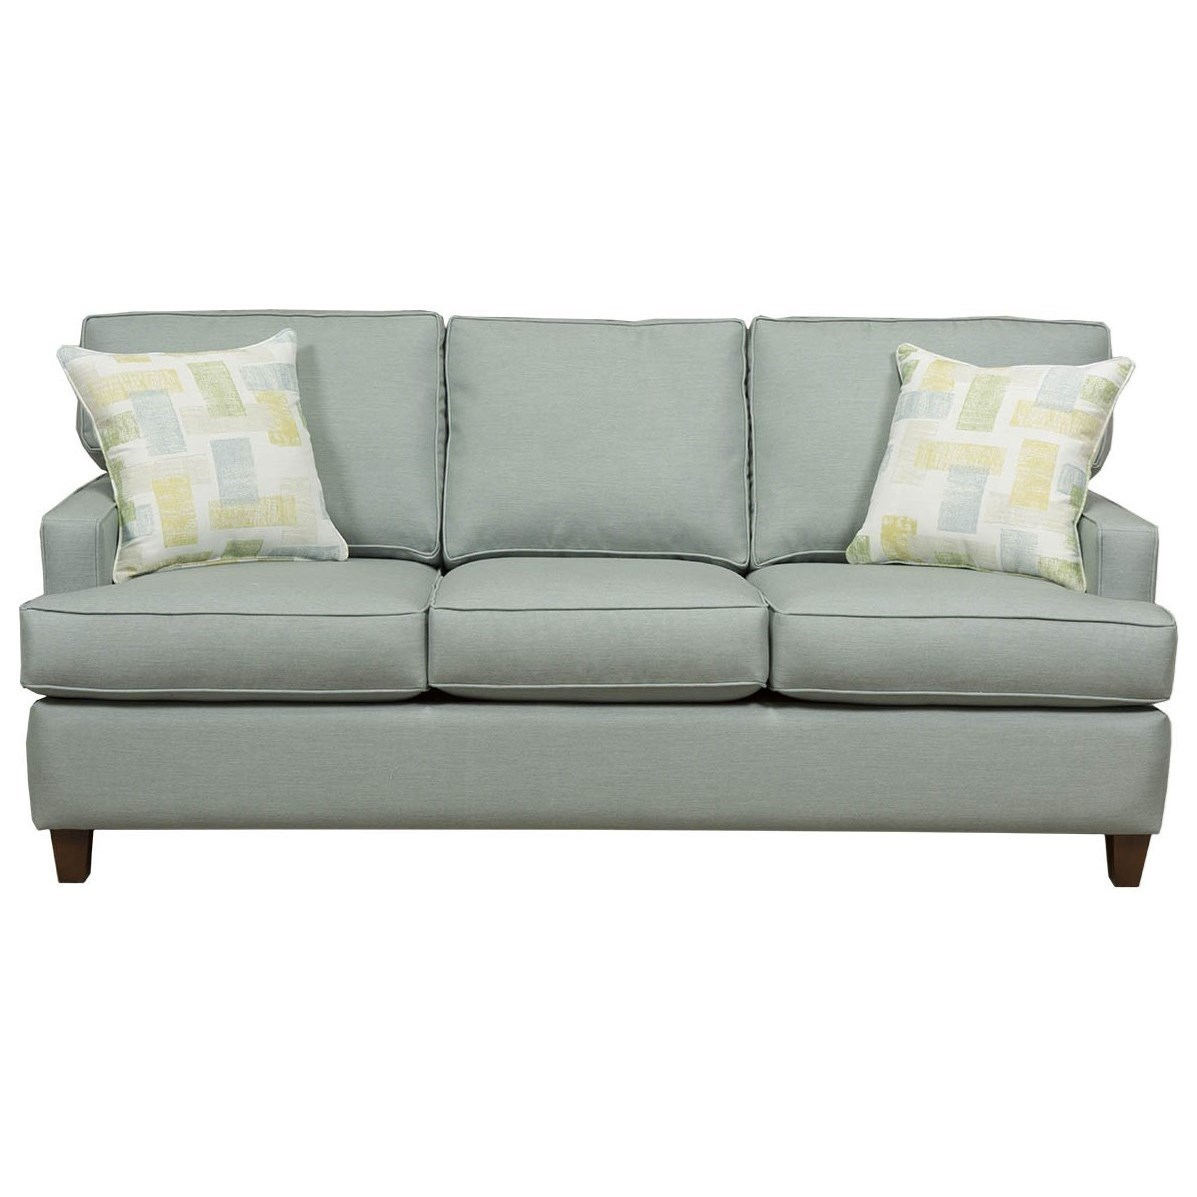 162 Sofa by Capris Furniture at Baer's Furniture